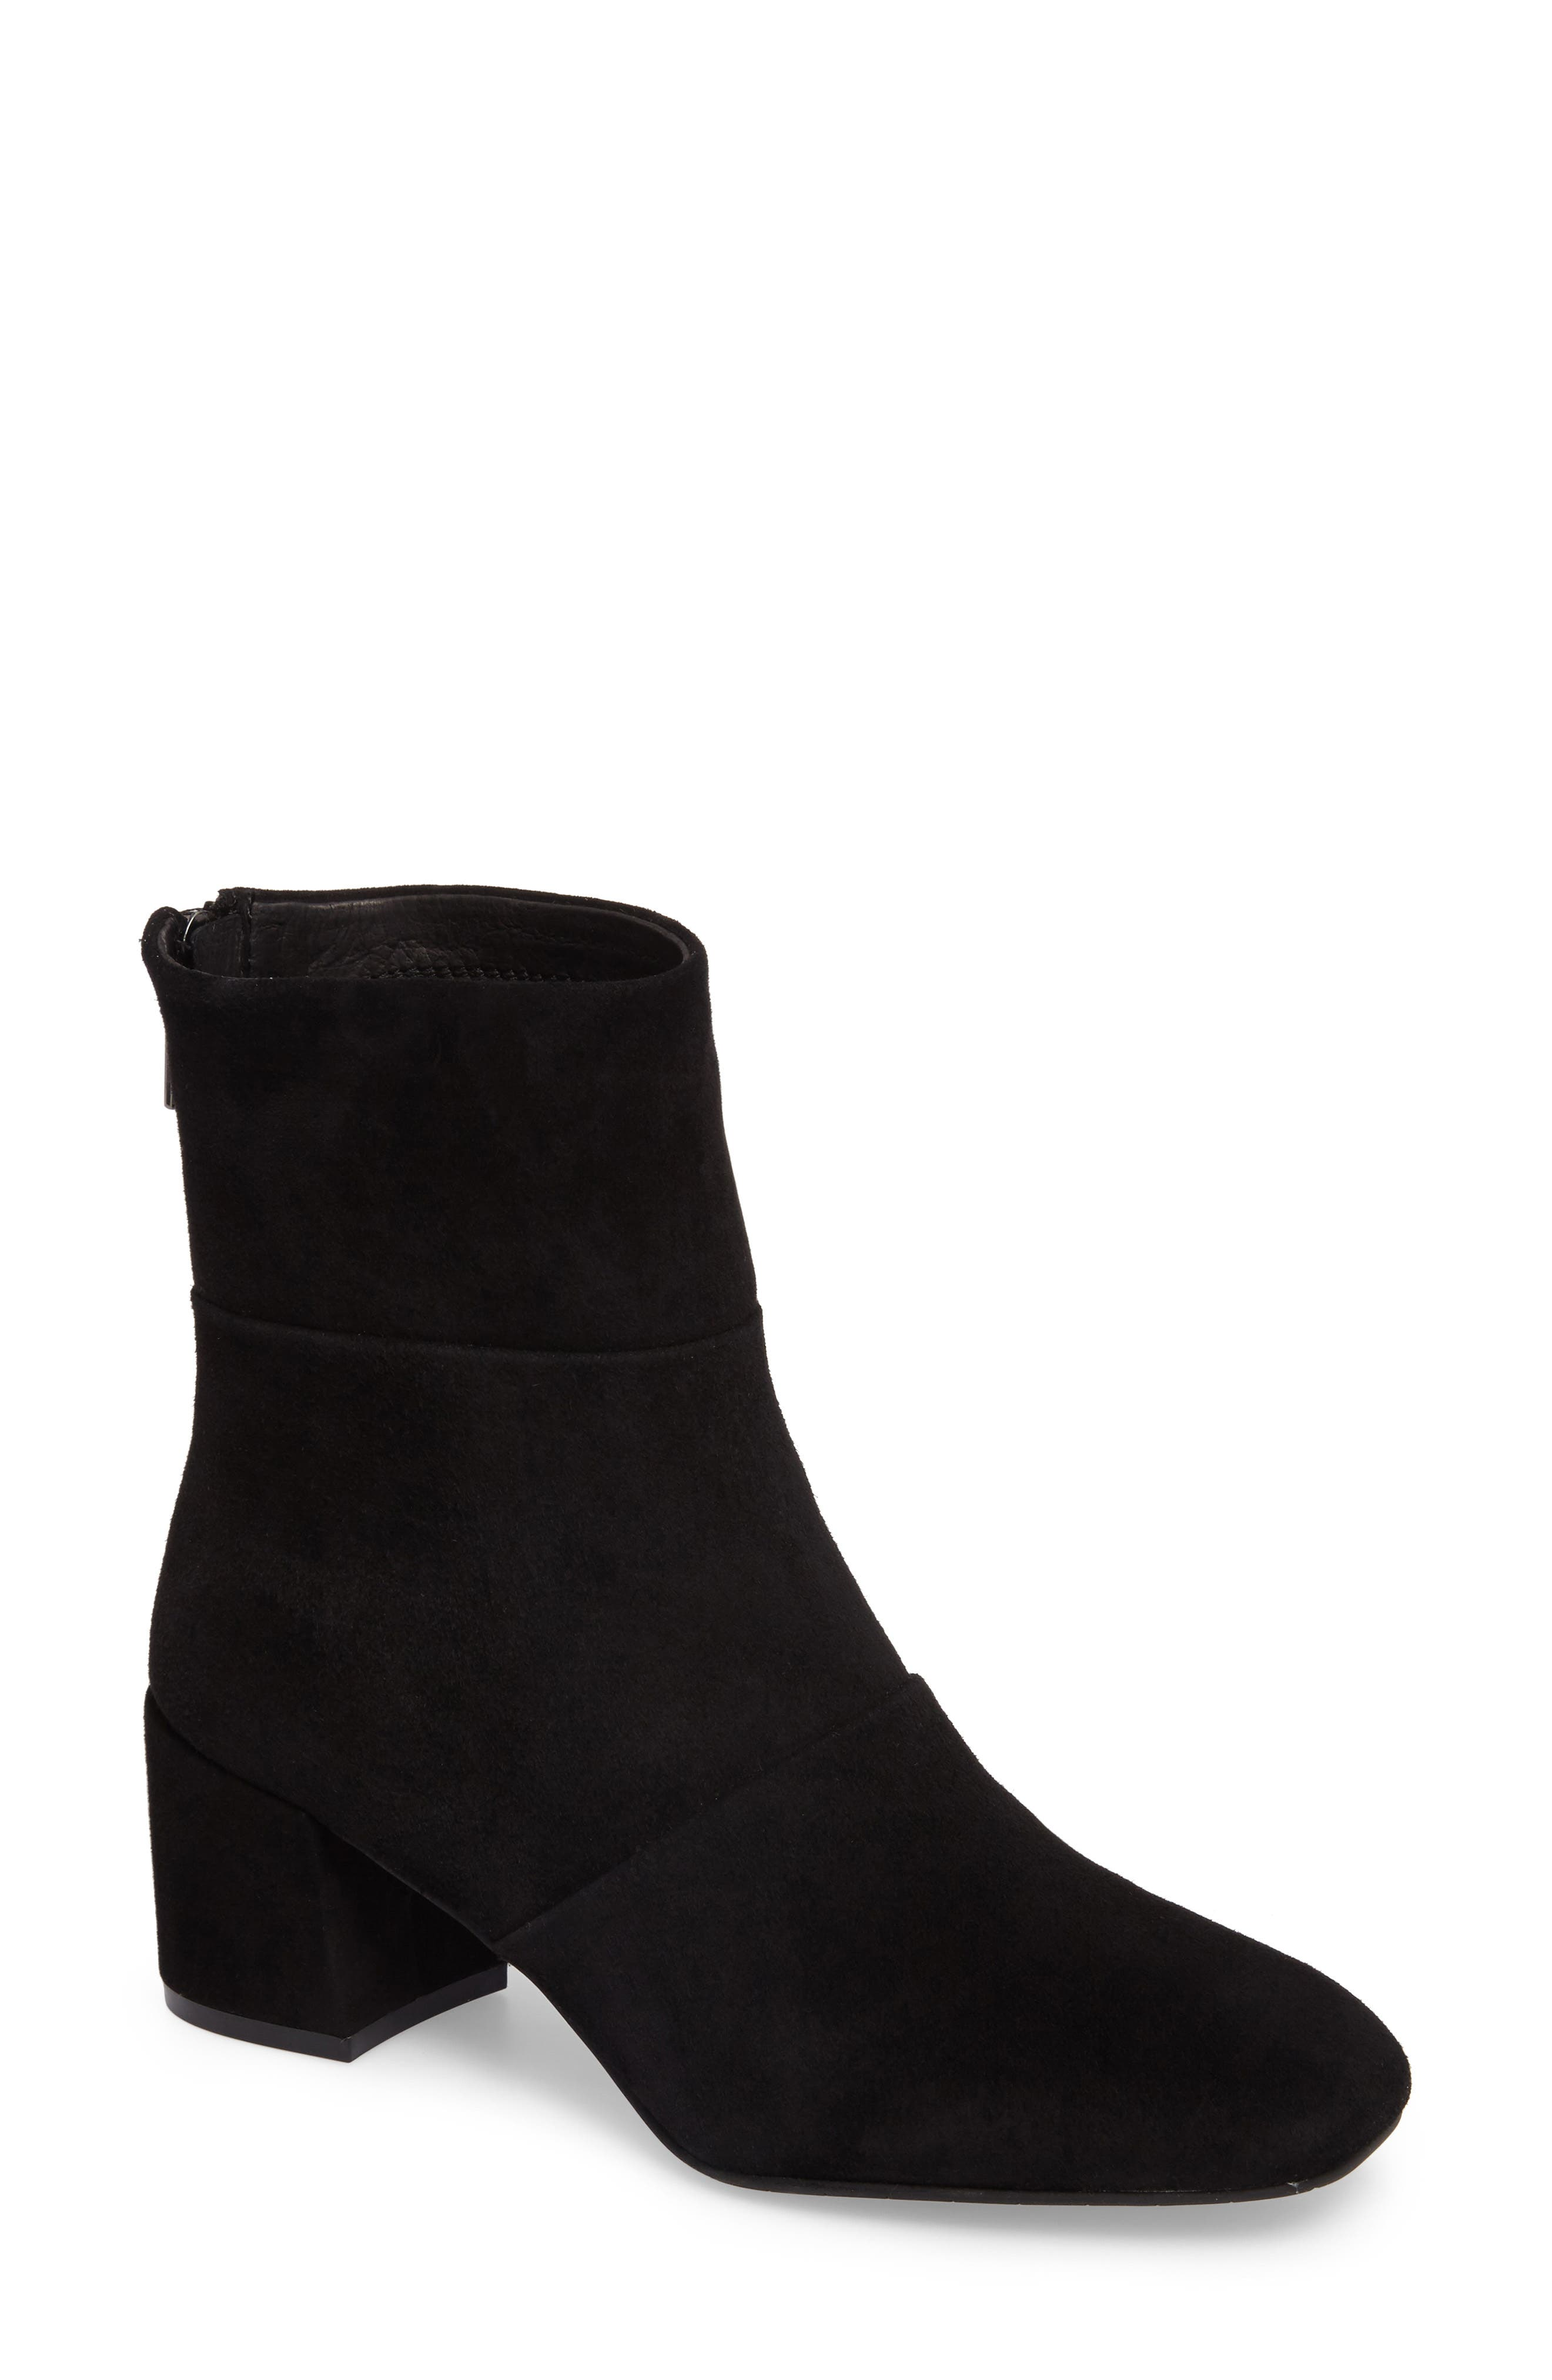 Alternate Image 1 Selected - Kenneth Cole New York Eryc Bootie (Women)